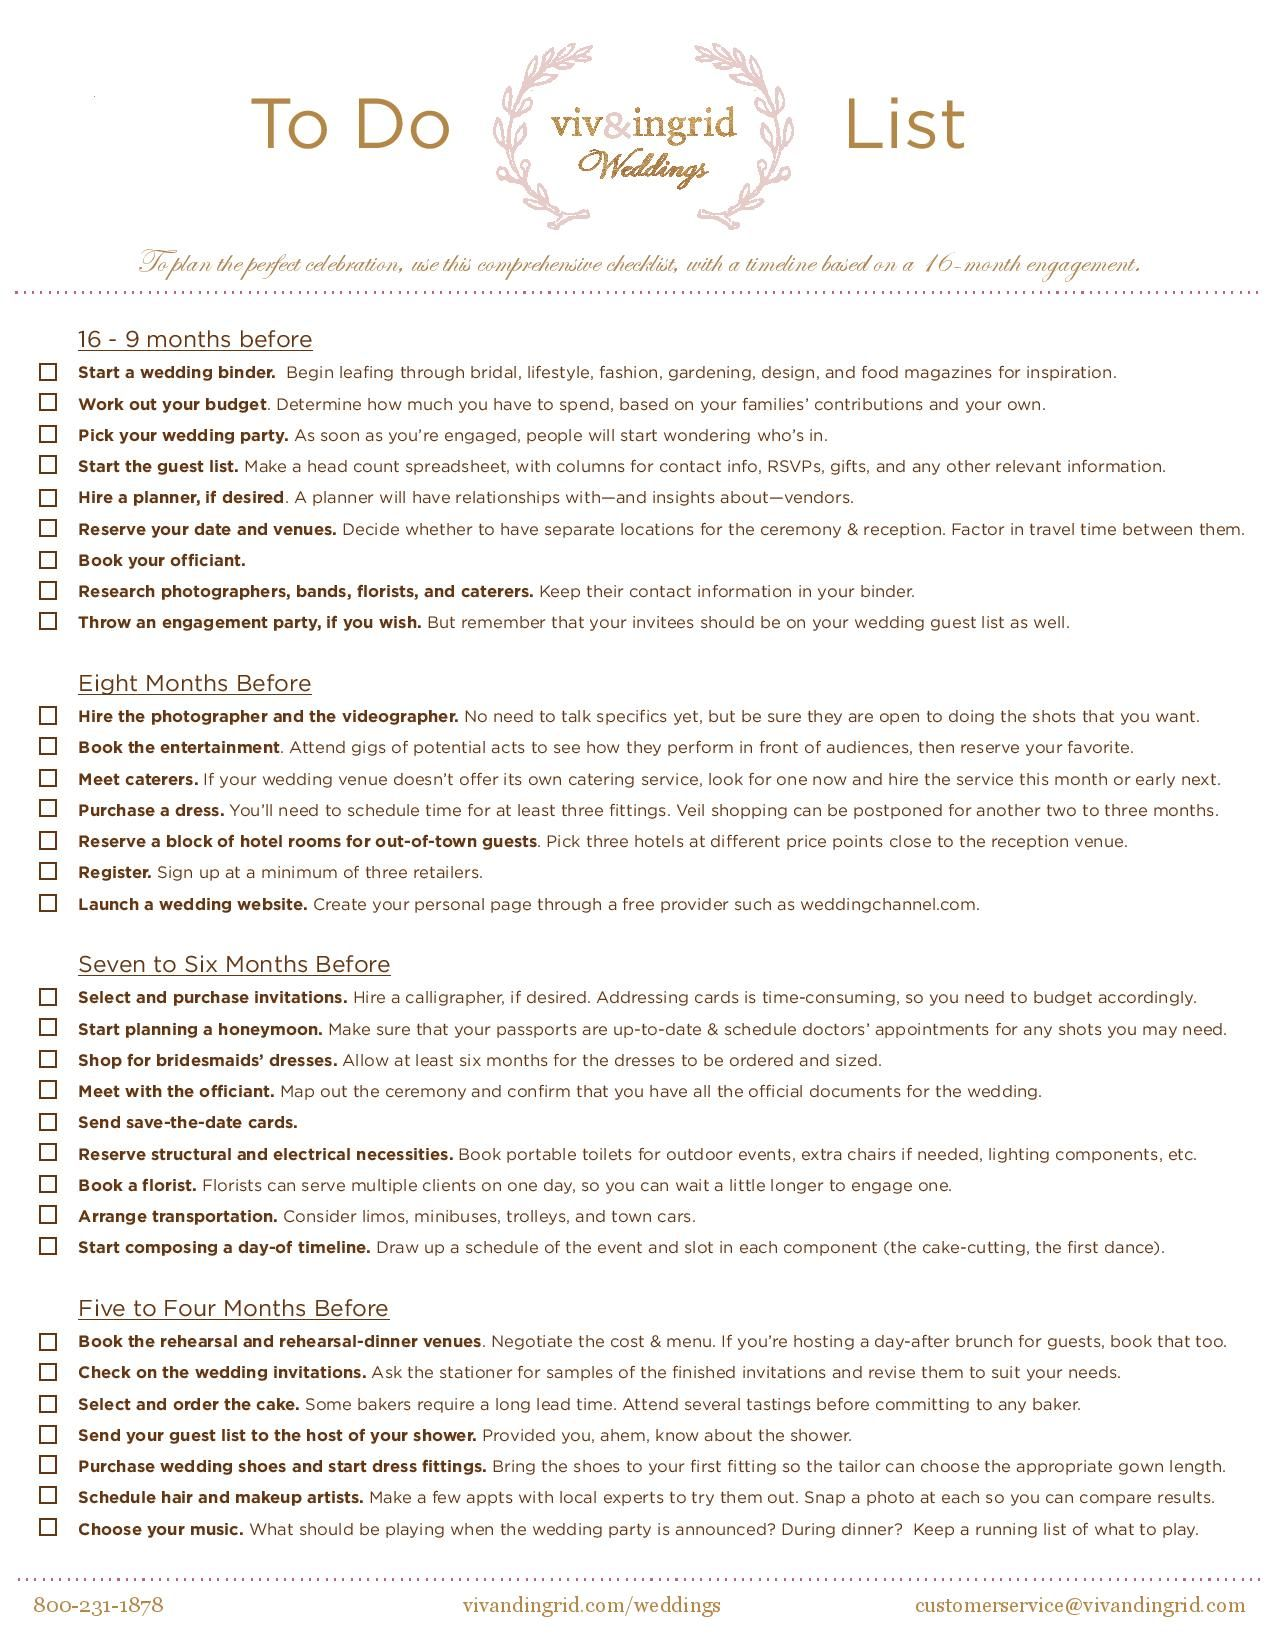 We Made You A Free Printable Wedding To Do Checklist With All The Things